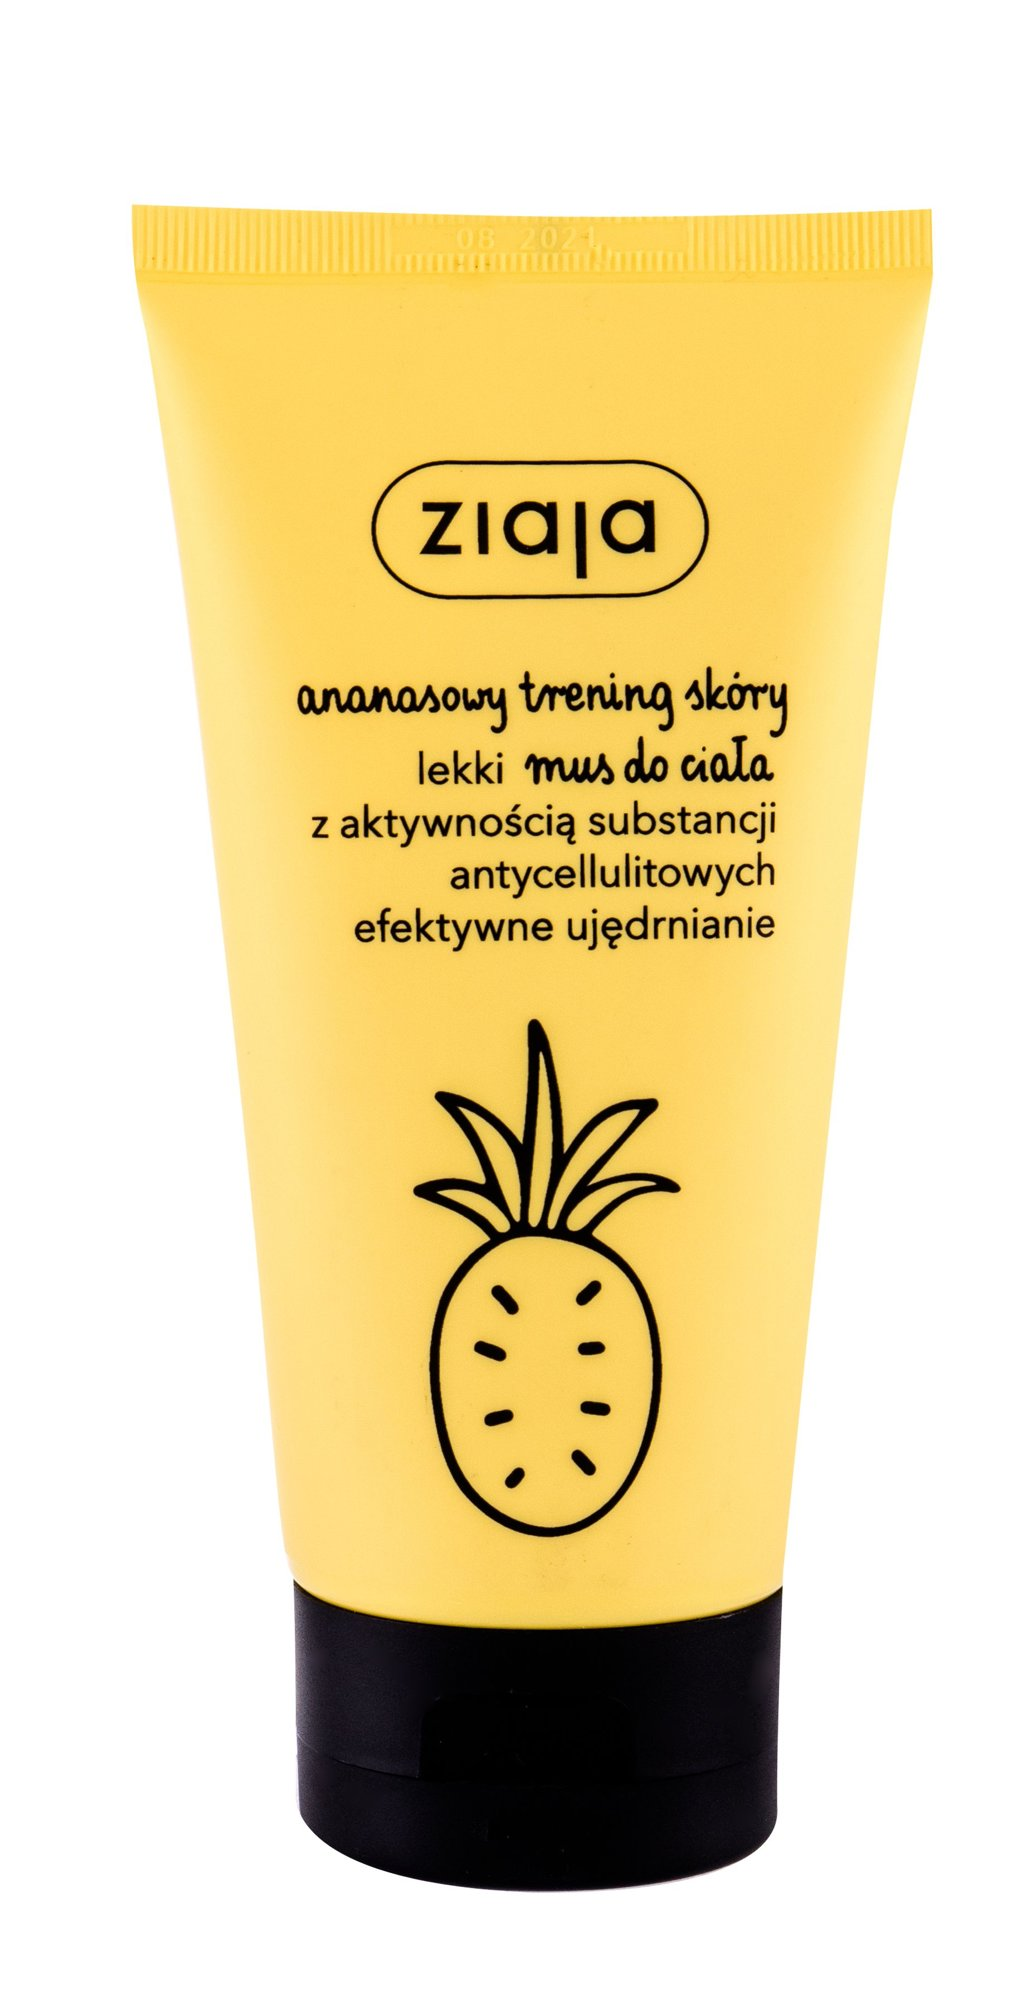 Ziaja Pineapple Body Foam (Proti celulitidě a striím, W, 160 ml)